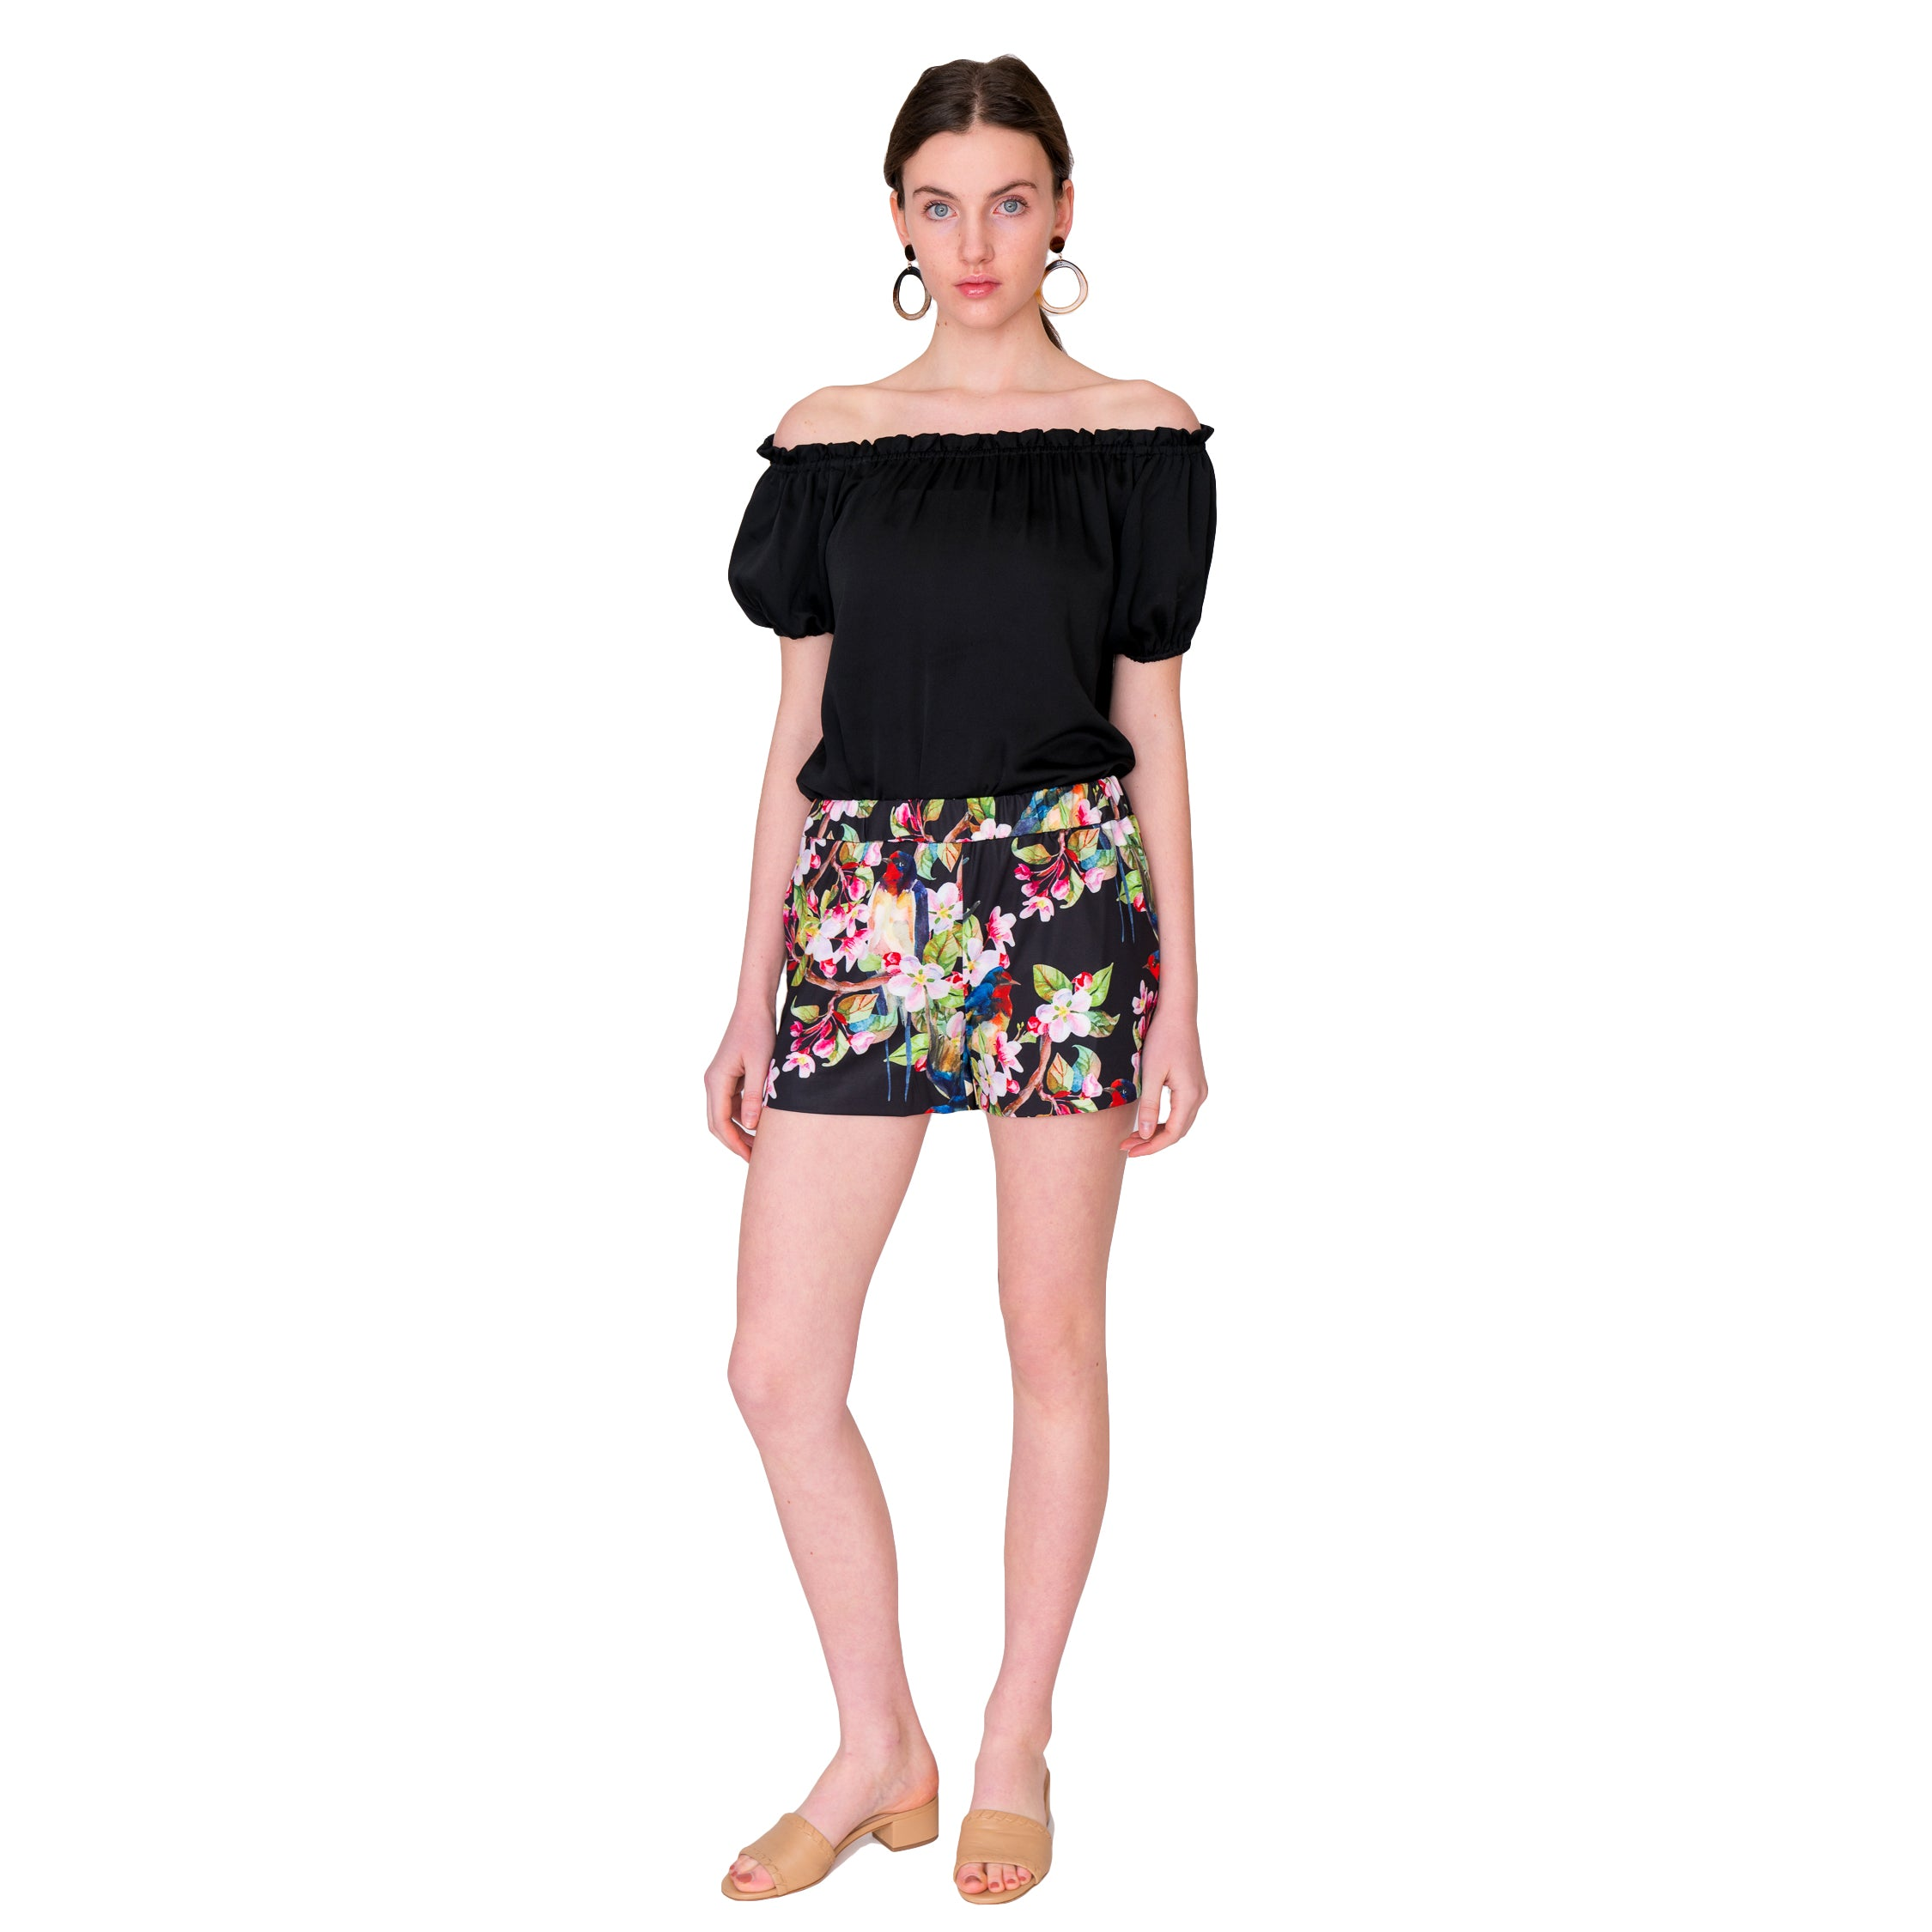 Libby Shorts in Bird Garden Floral - Elizabeth Ackerman New York